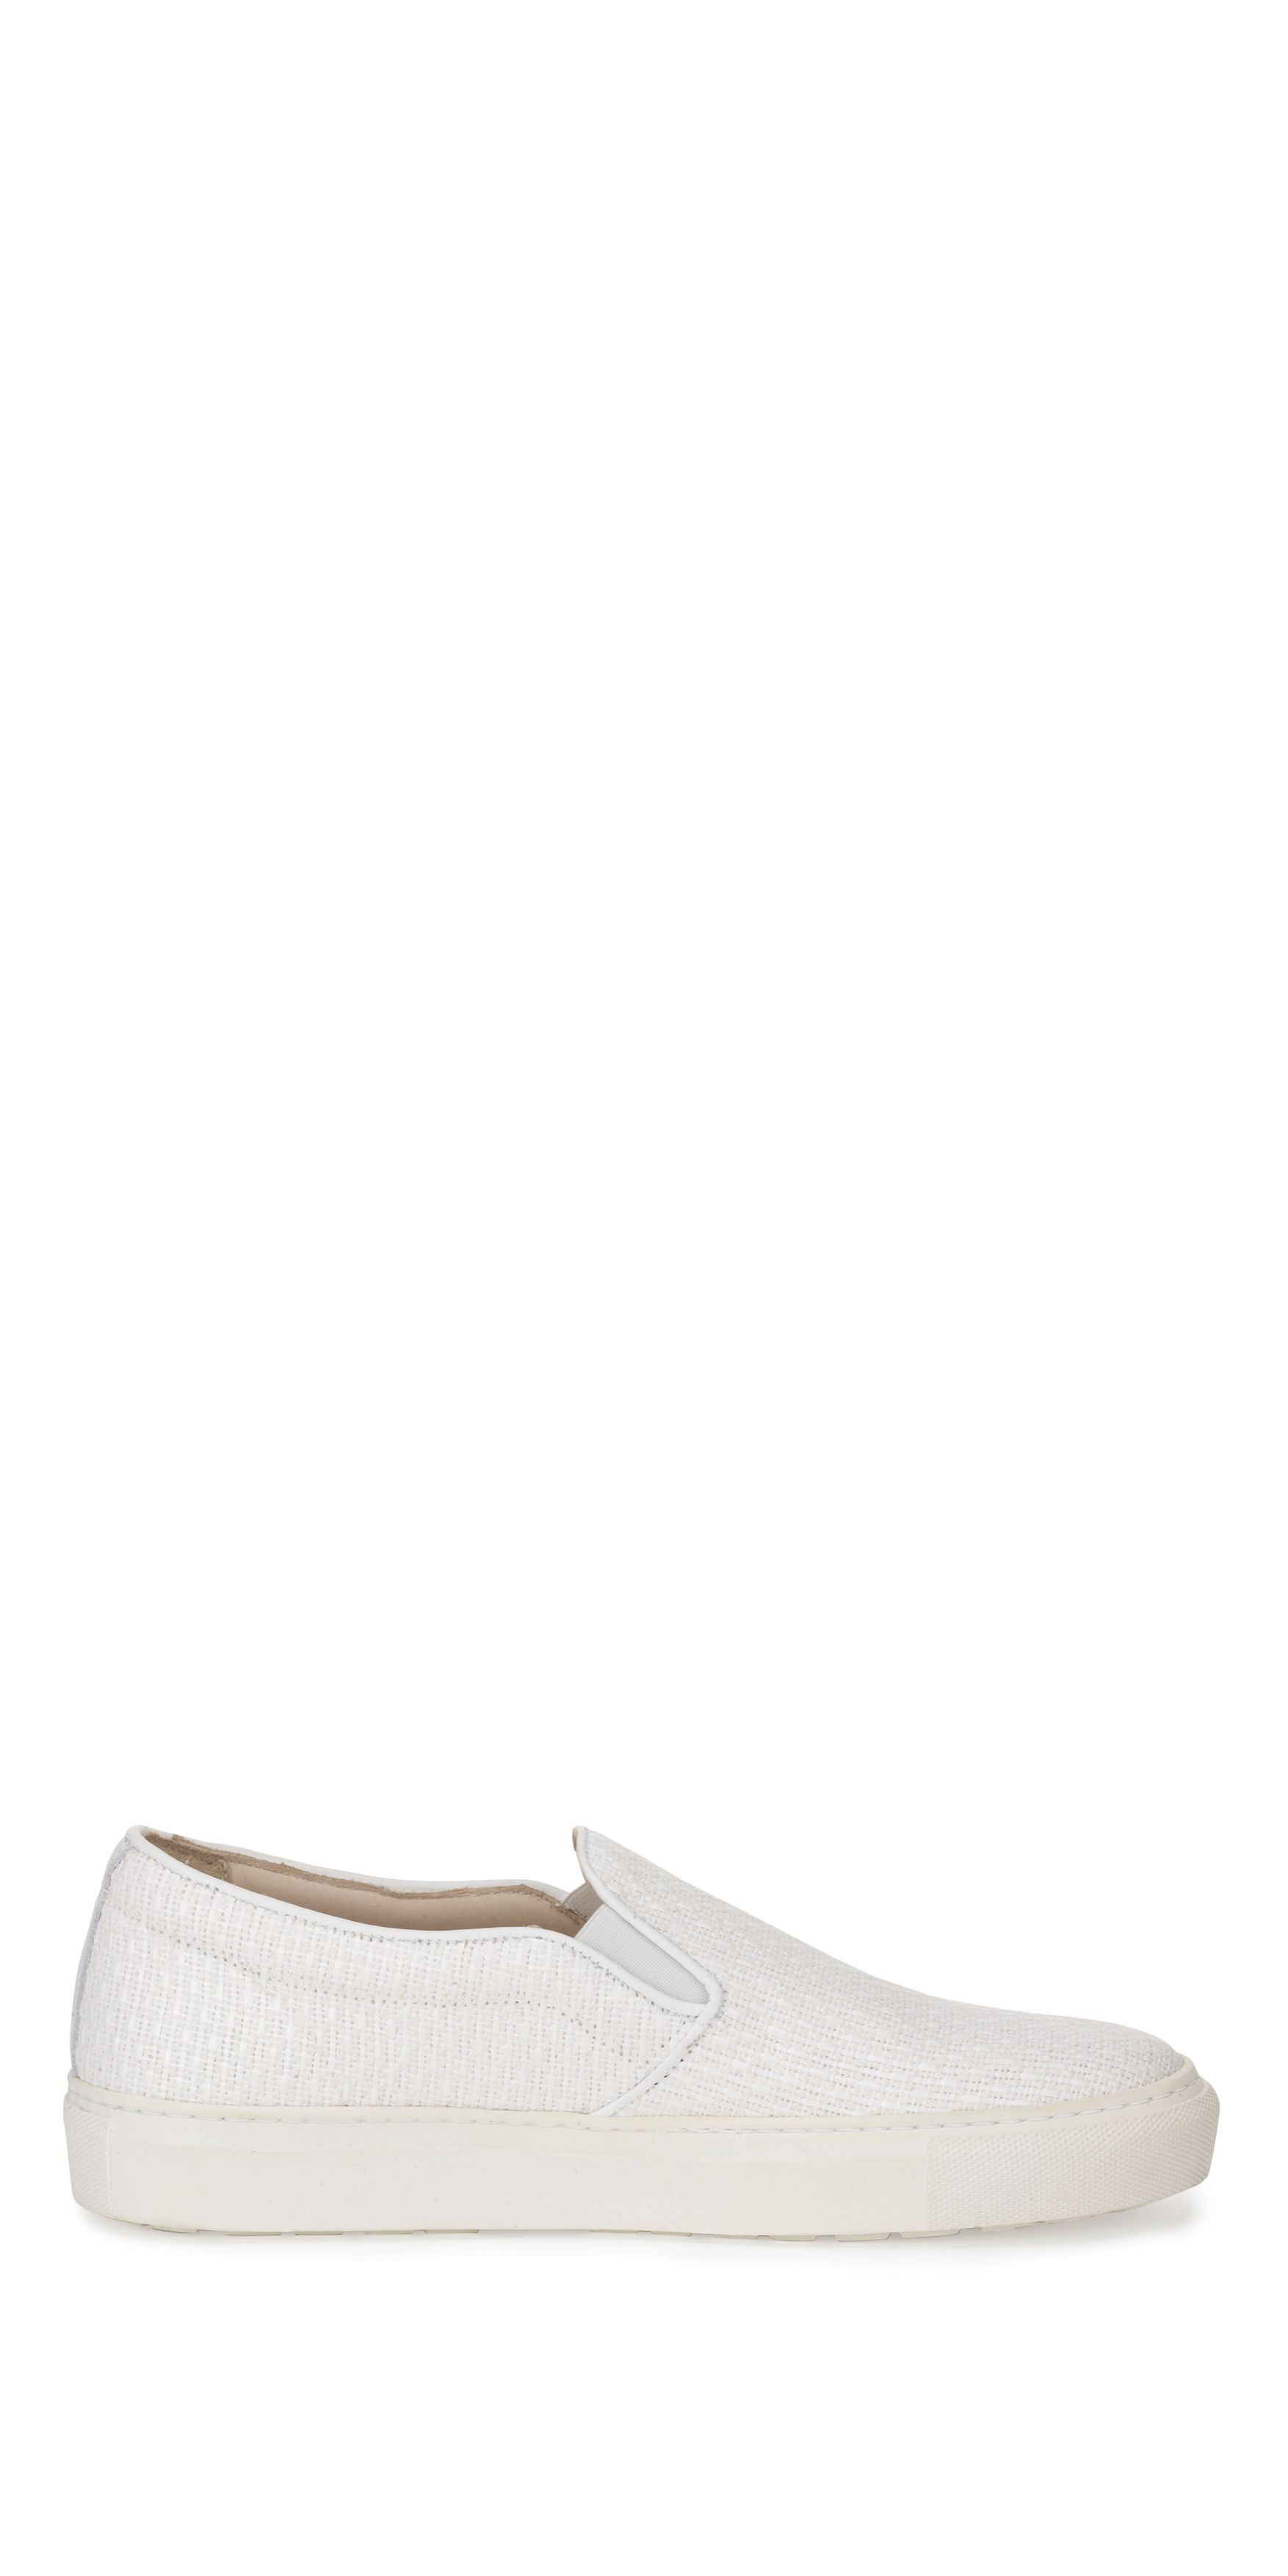 Lena raffia slip on trainer